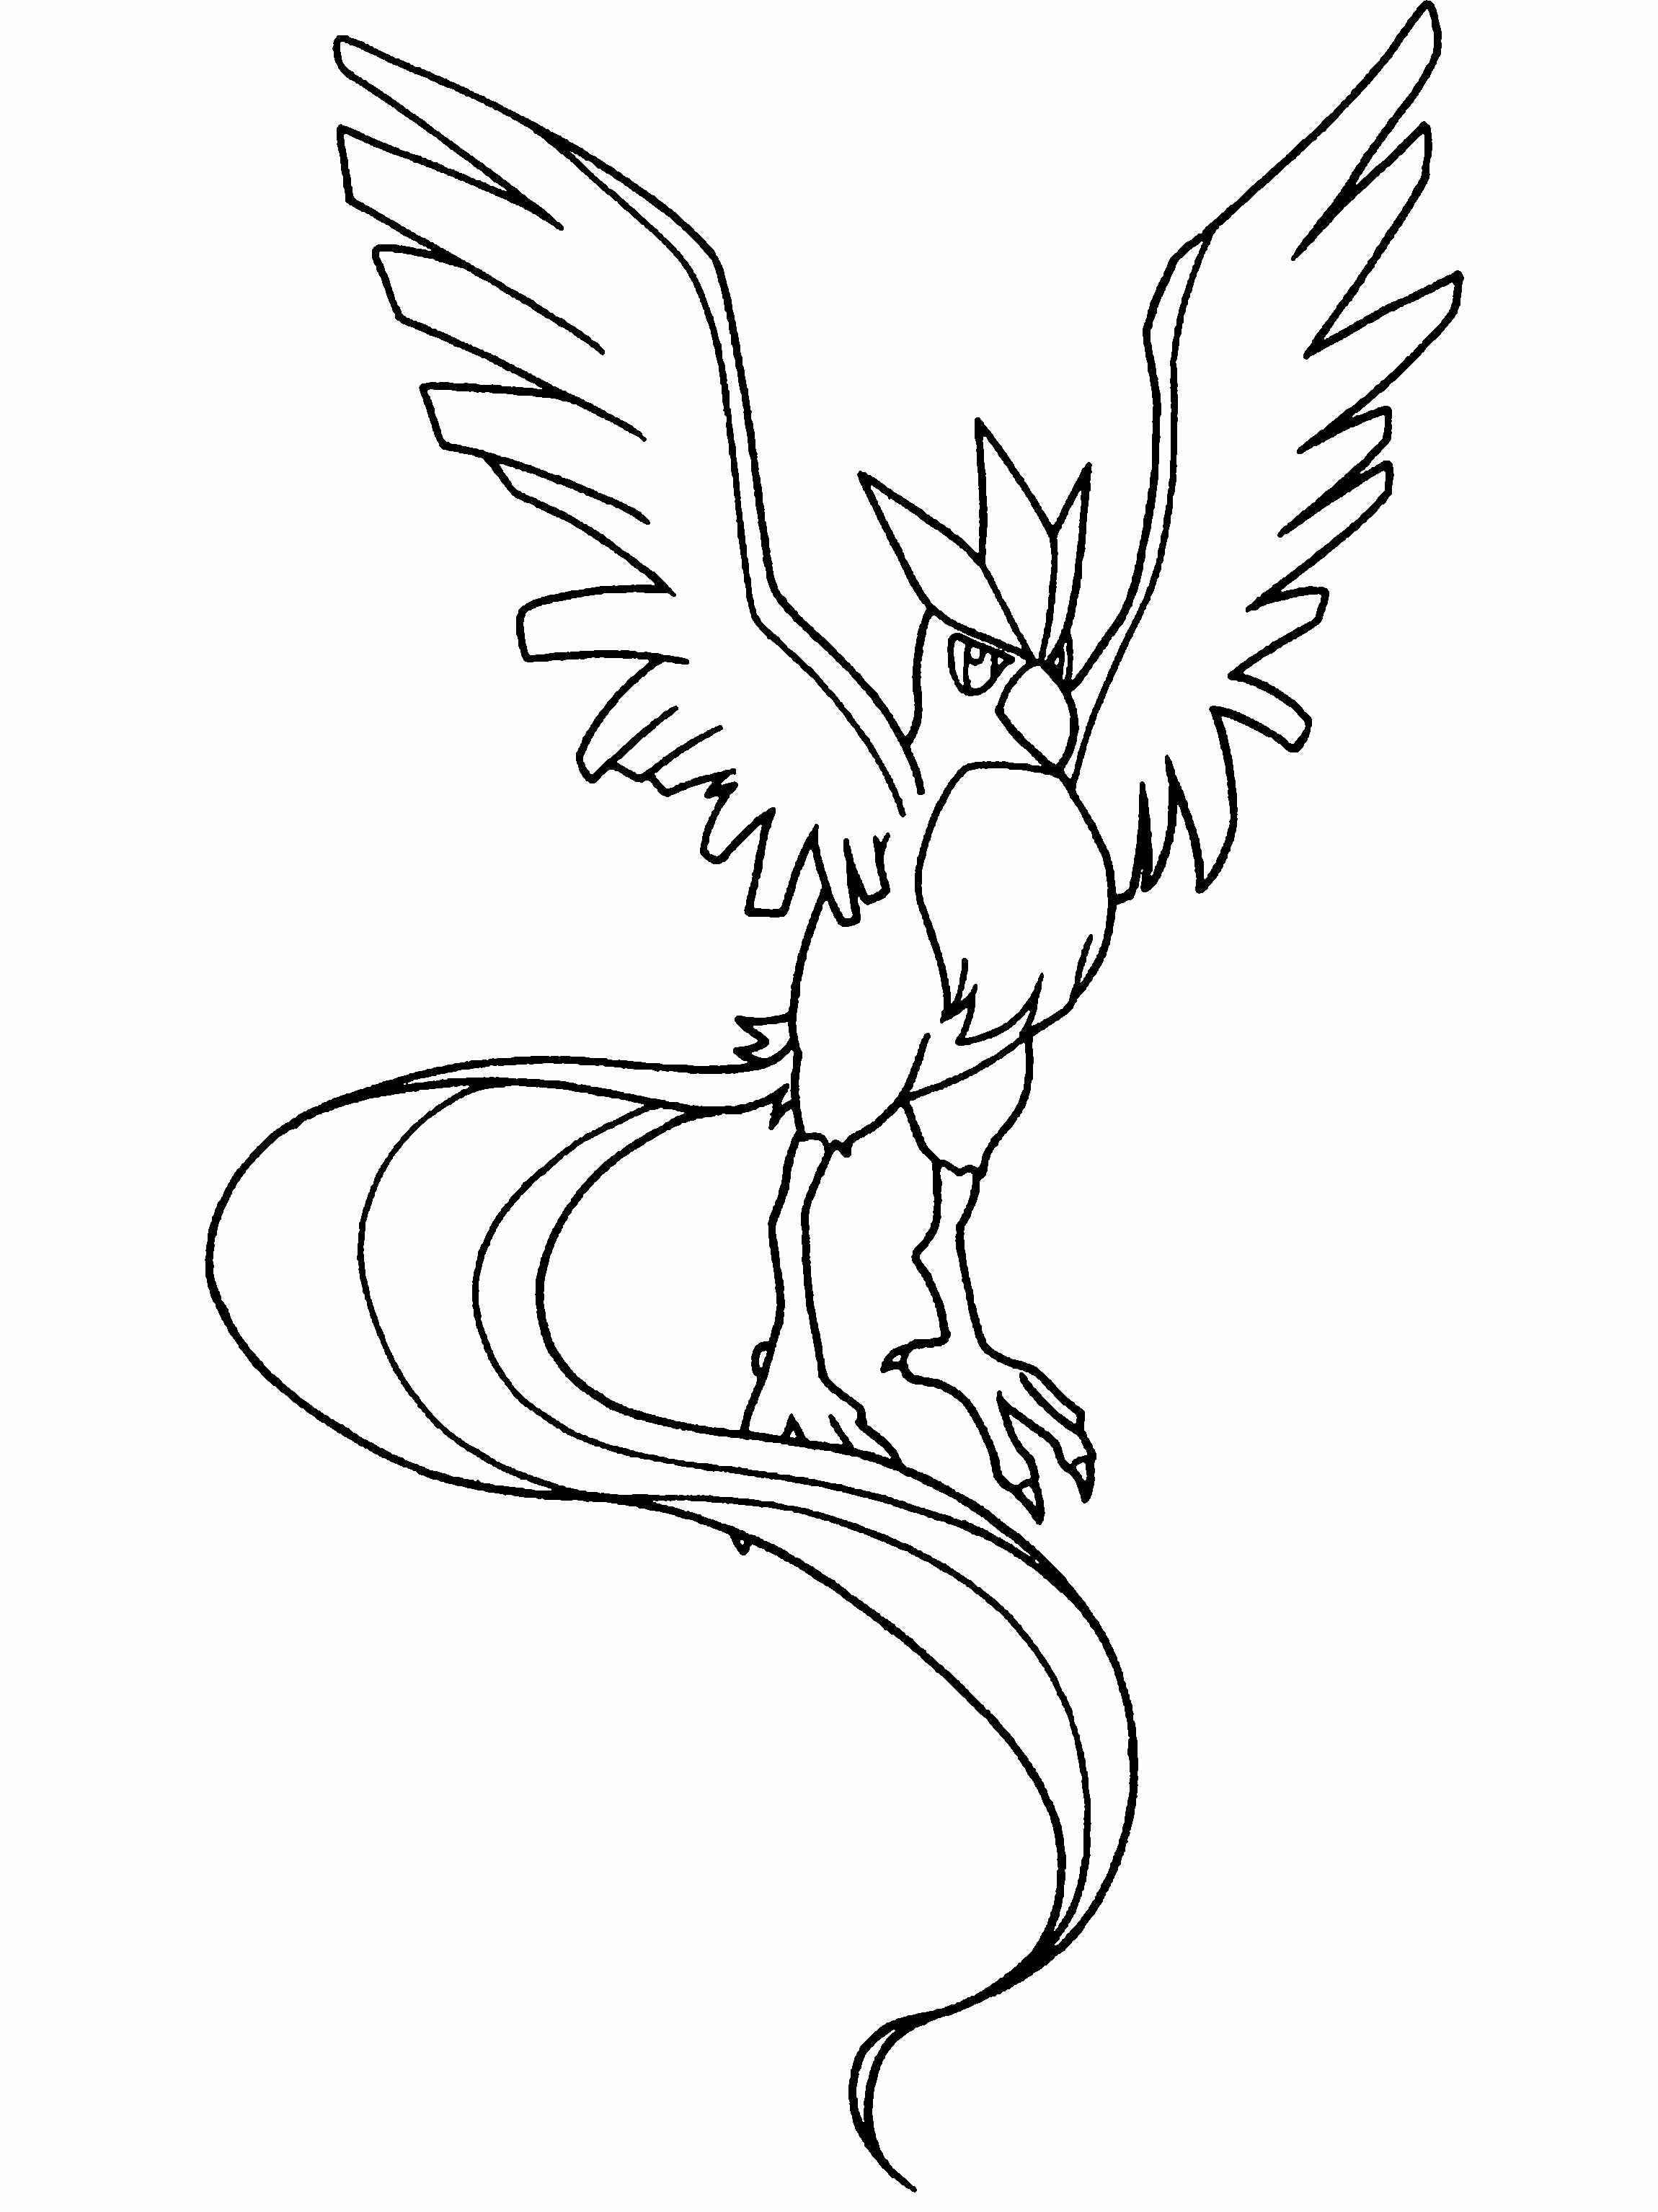 A Great Bird Pokemon Coloring Page Coloring Pages Lineart Pokemon